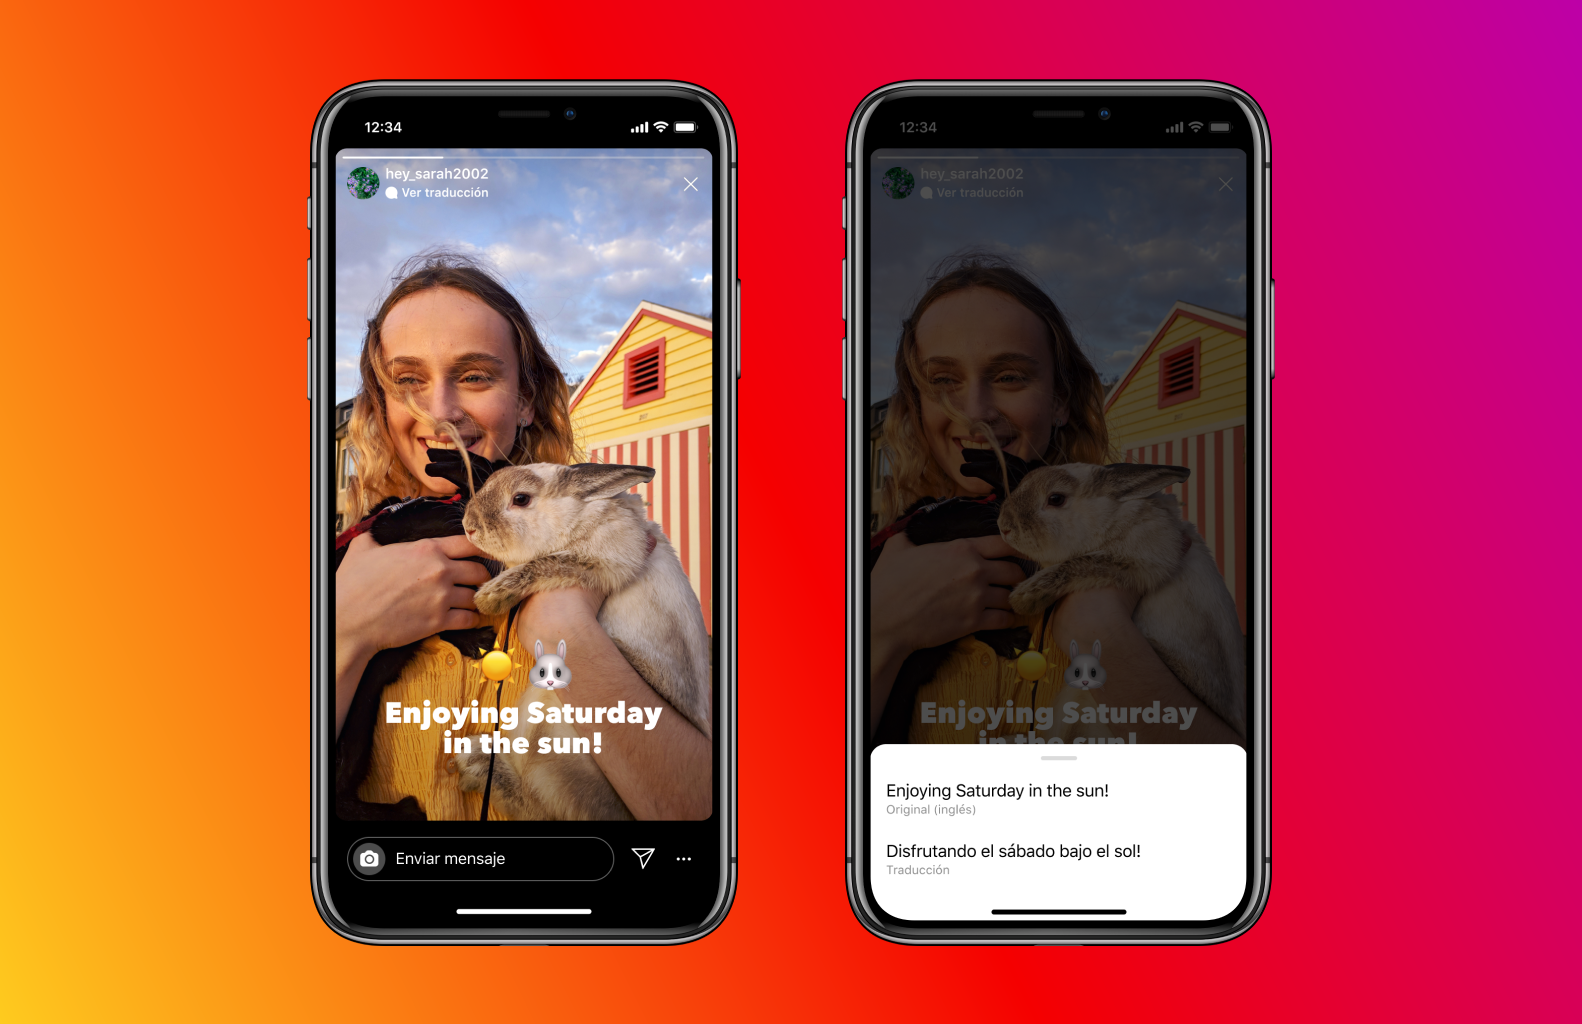 Now, it'll be easier than ever for users to connect with global audiences on Instagram Stories. With translations, people will be able to translate Stories text into their native language and enjoy more content on Instagram.